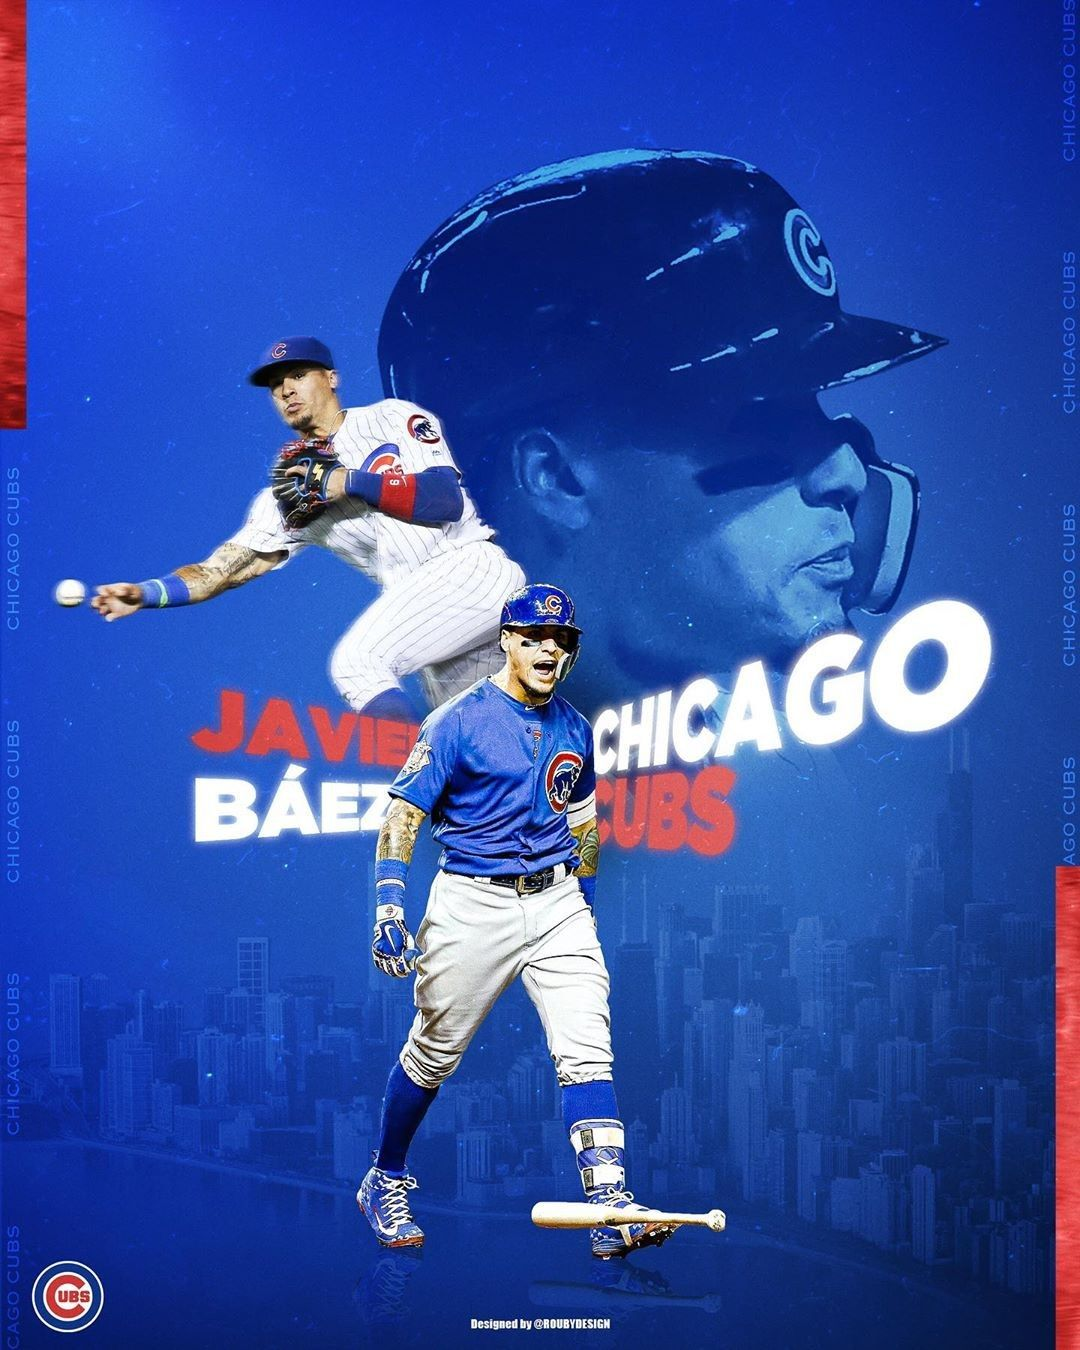 Pin By Jason Streets On Mlb Chicago Cubs Wallpaper Mlb Chicago Cubs Chicago Cubs Baseball